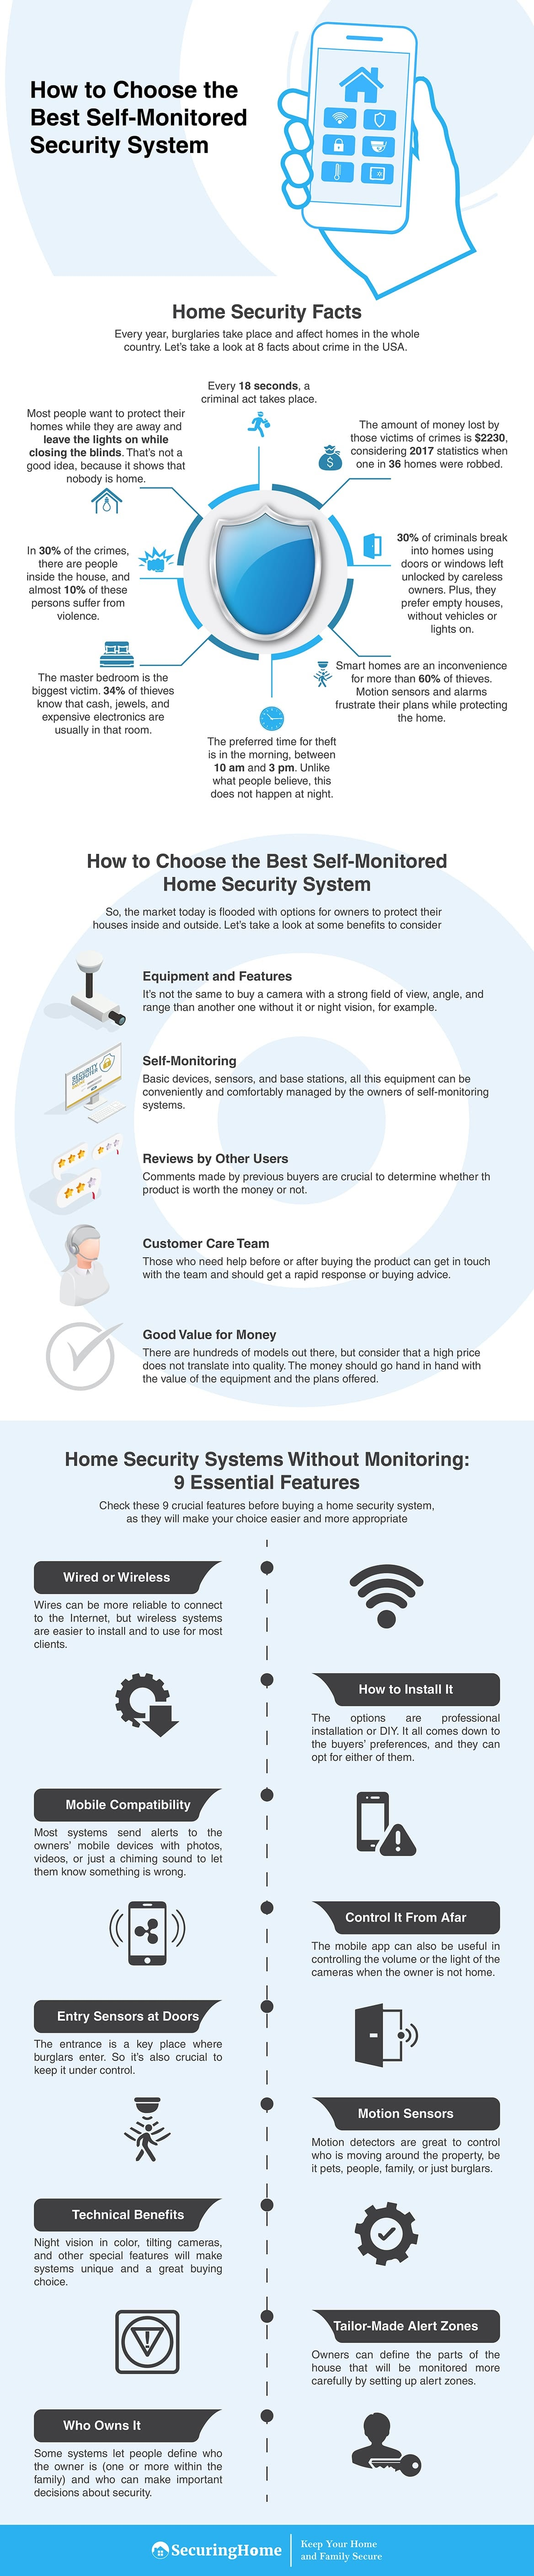 How to Choose the Best Self-Monitored Security System #infographic